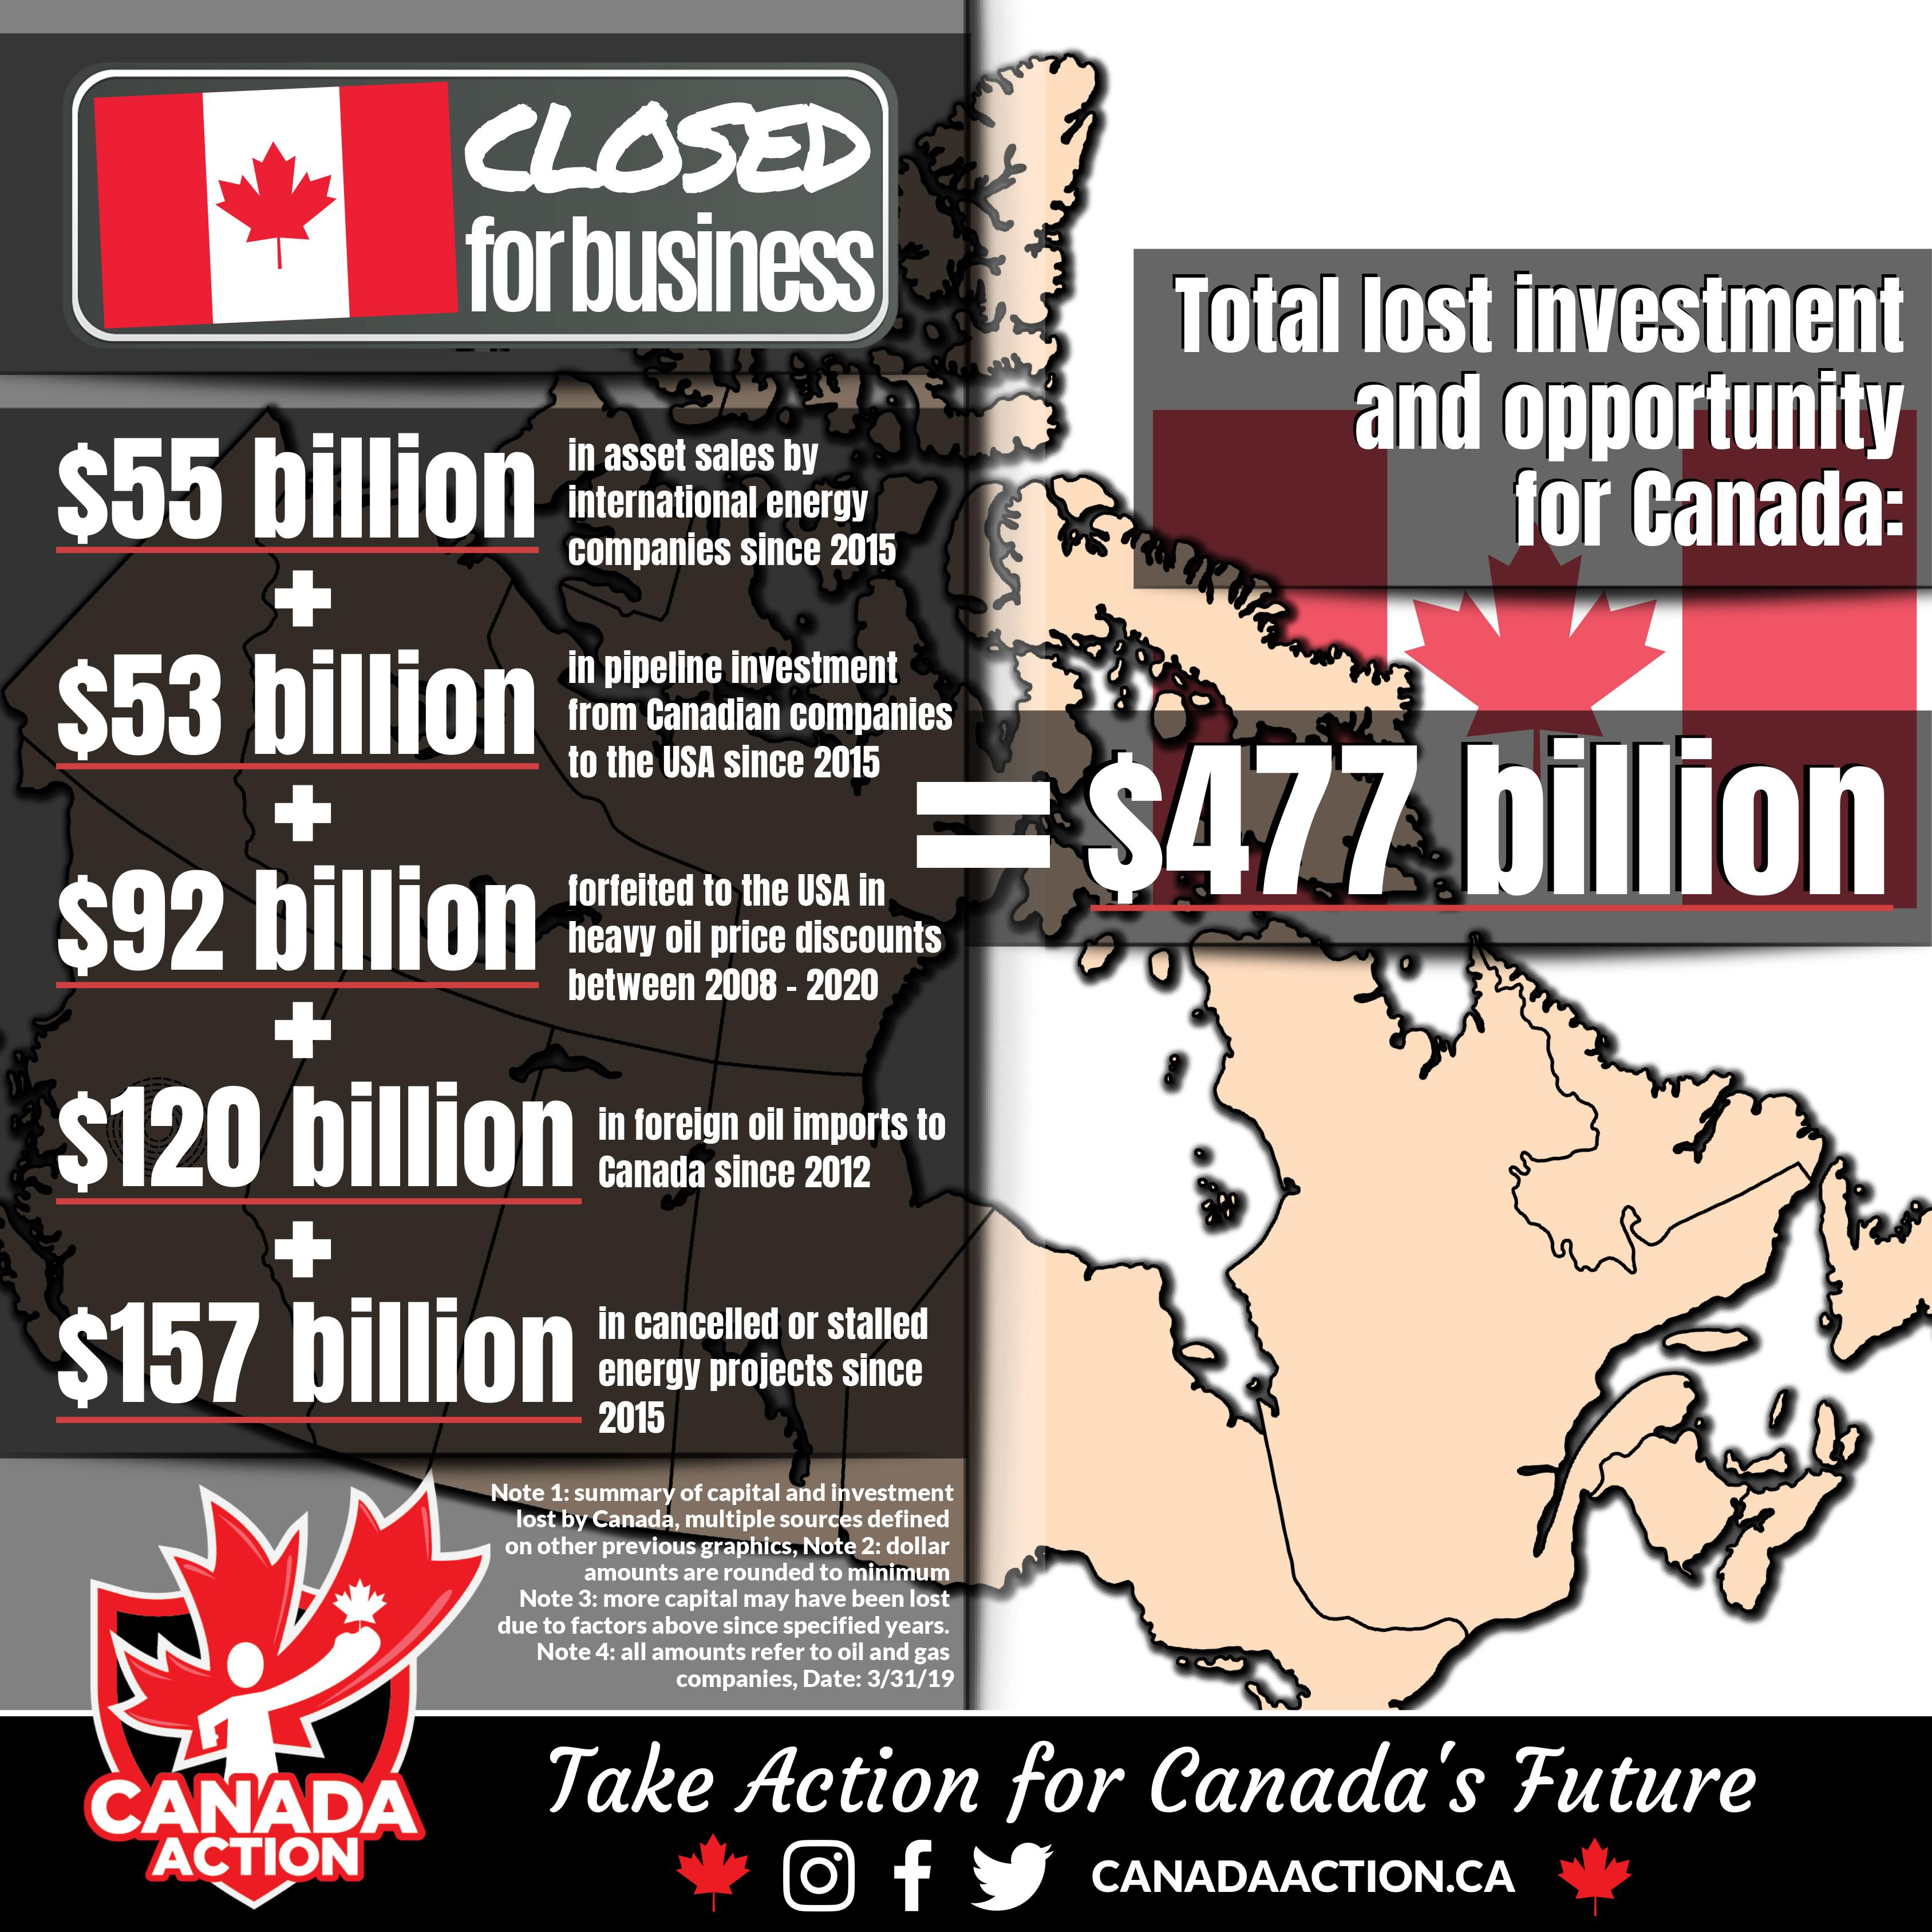 Canada is Closed for Business - Lost Capital